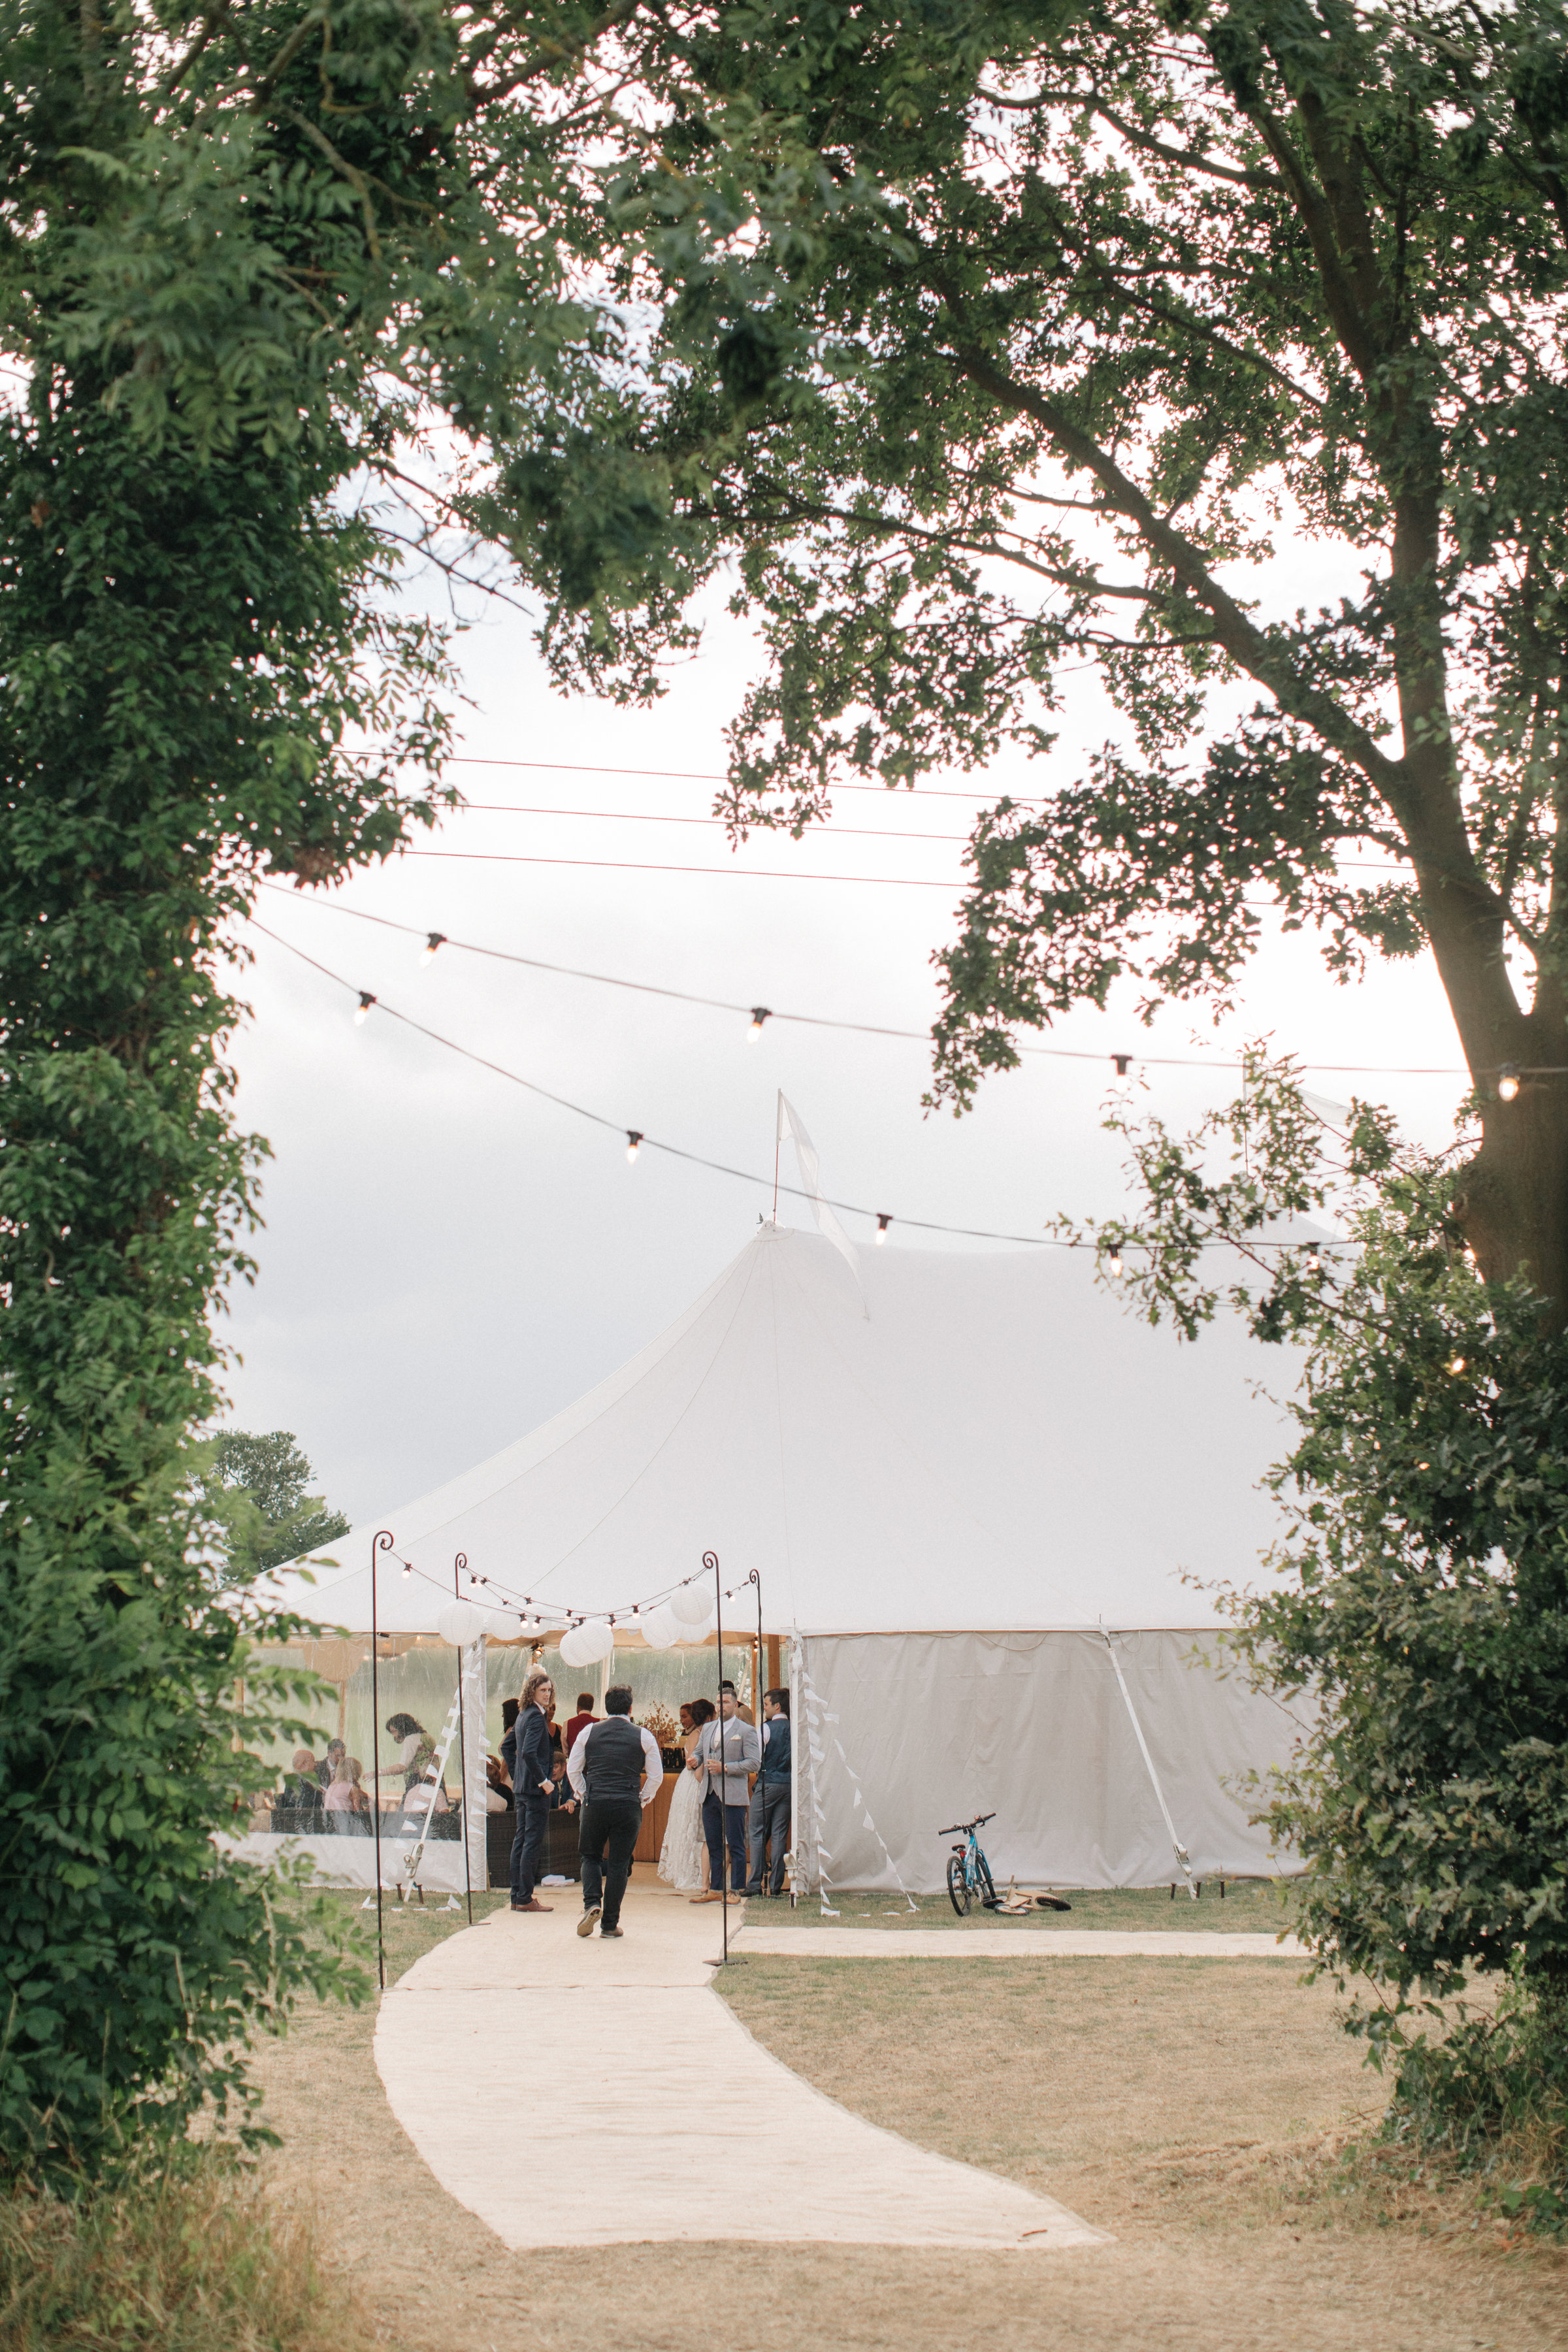 Steph & Ed's PapaKåta Sperry Tent wedding at home in Nottingham captured by M & J Photography: Sperry Tent Exterior